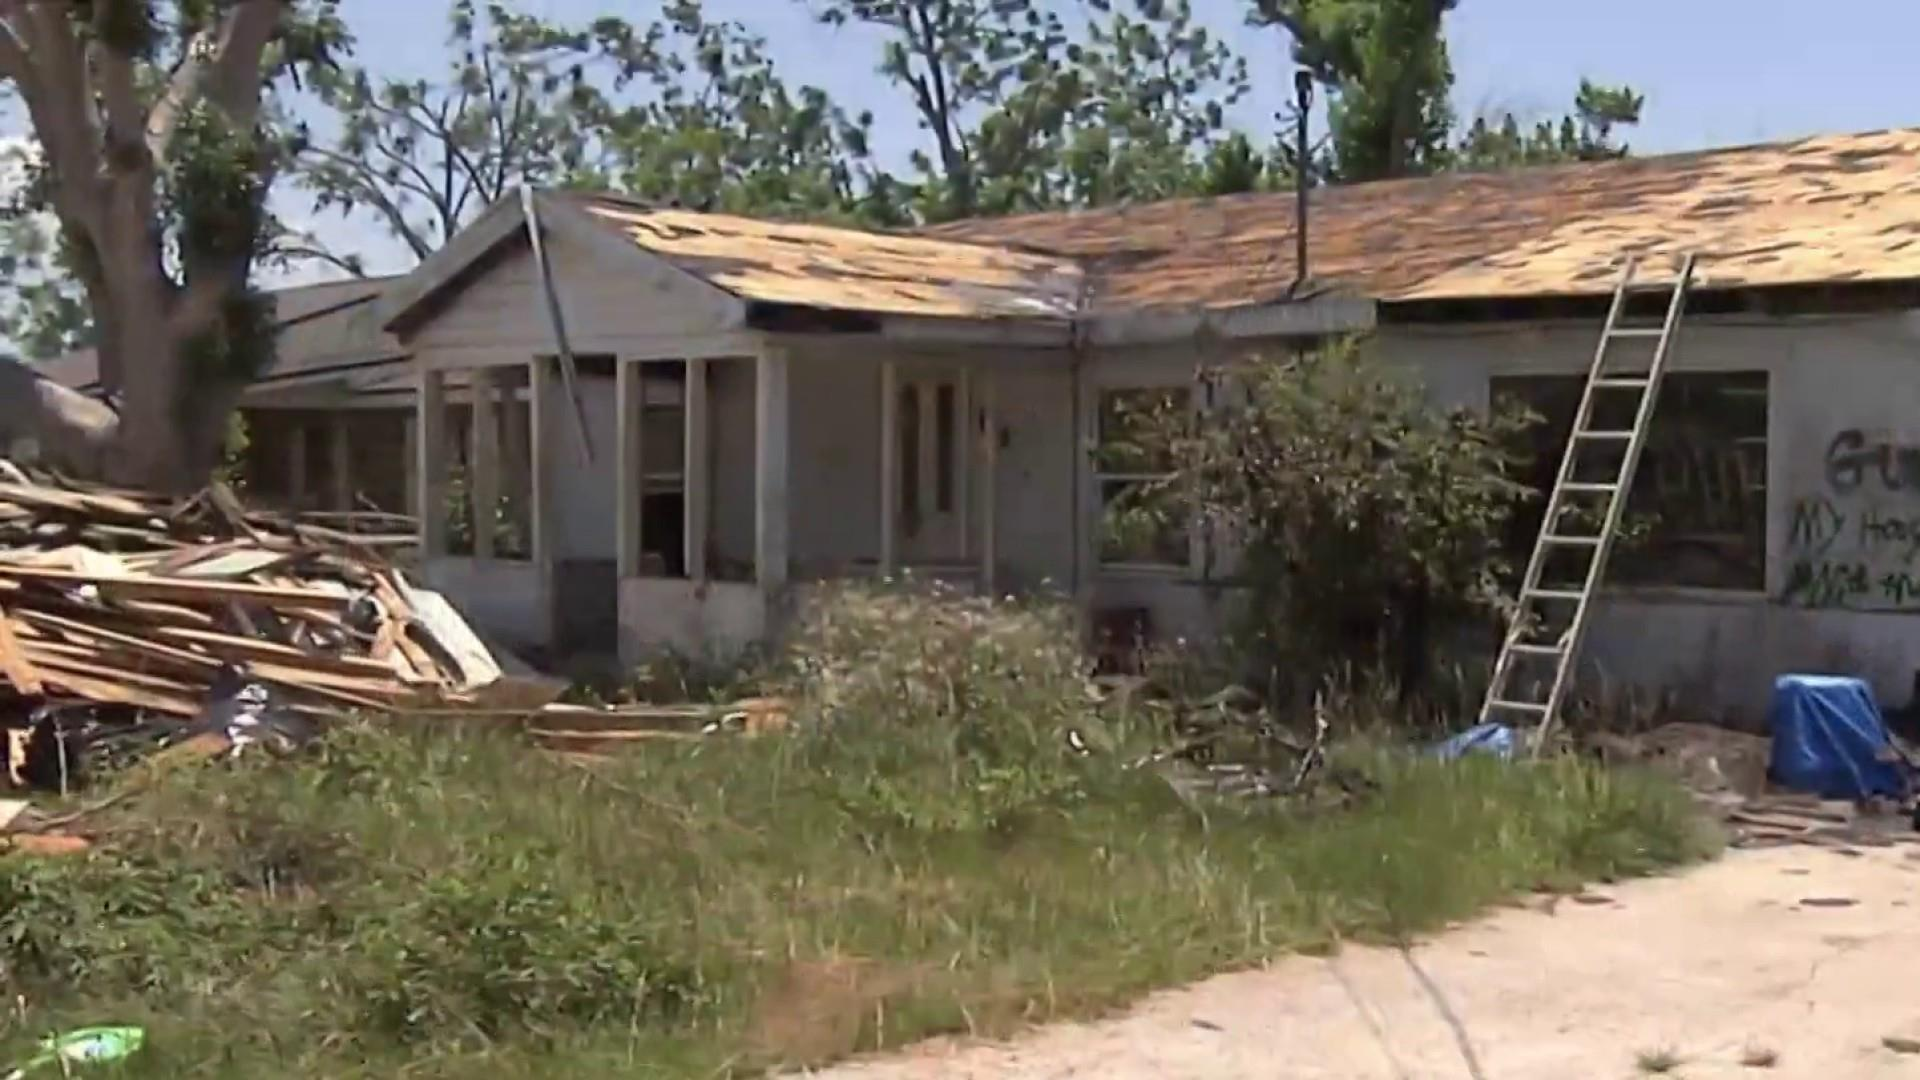 Florida Panhandle communities still struggling months after Hurricane Michael